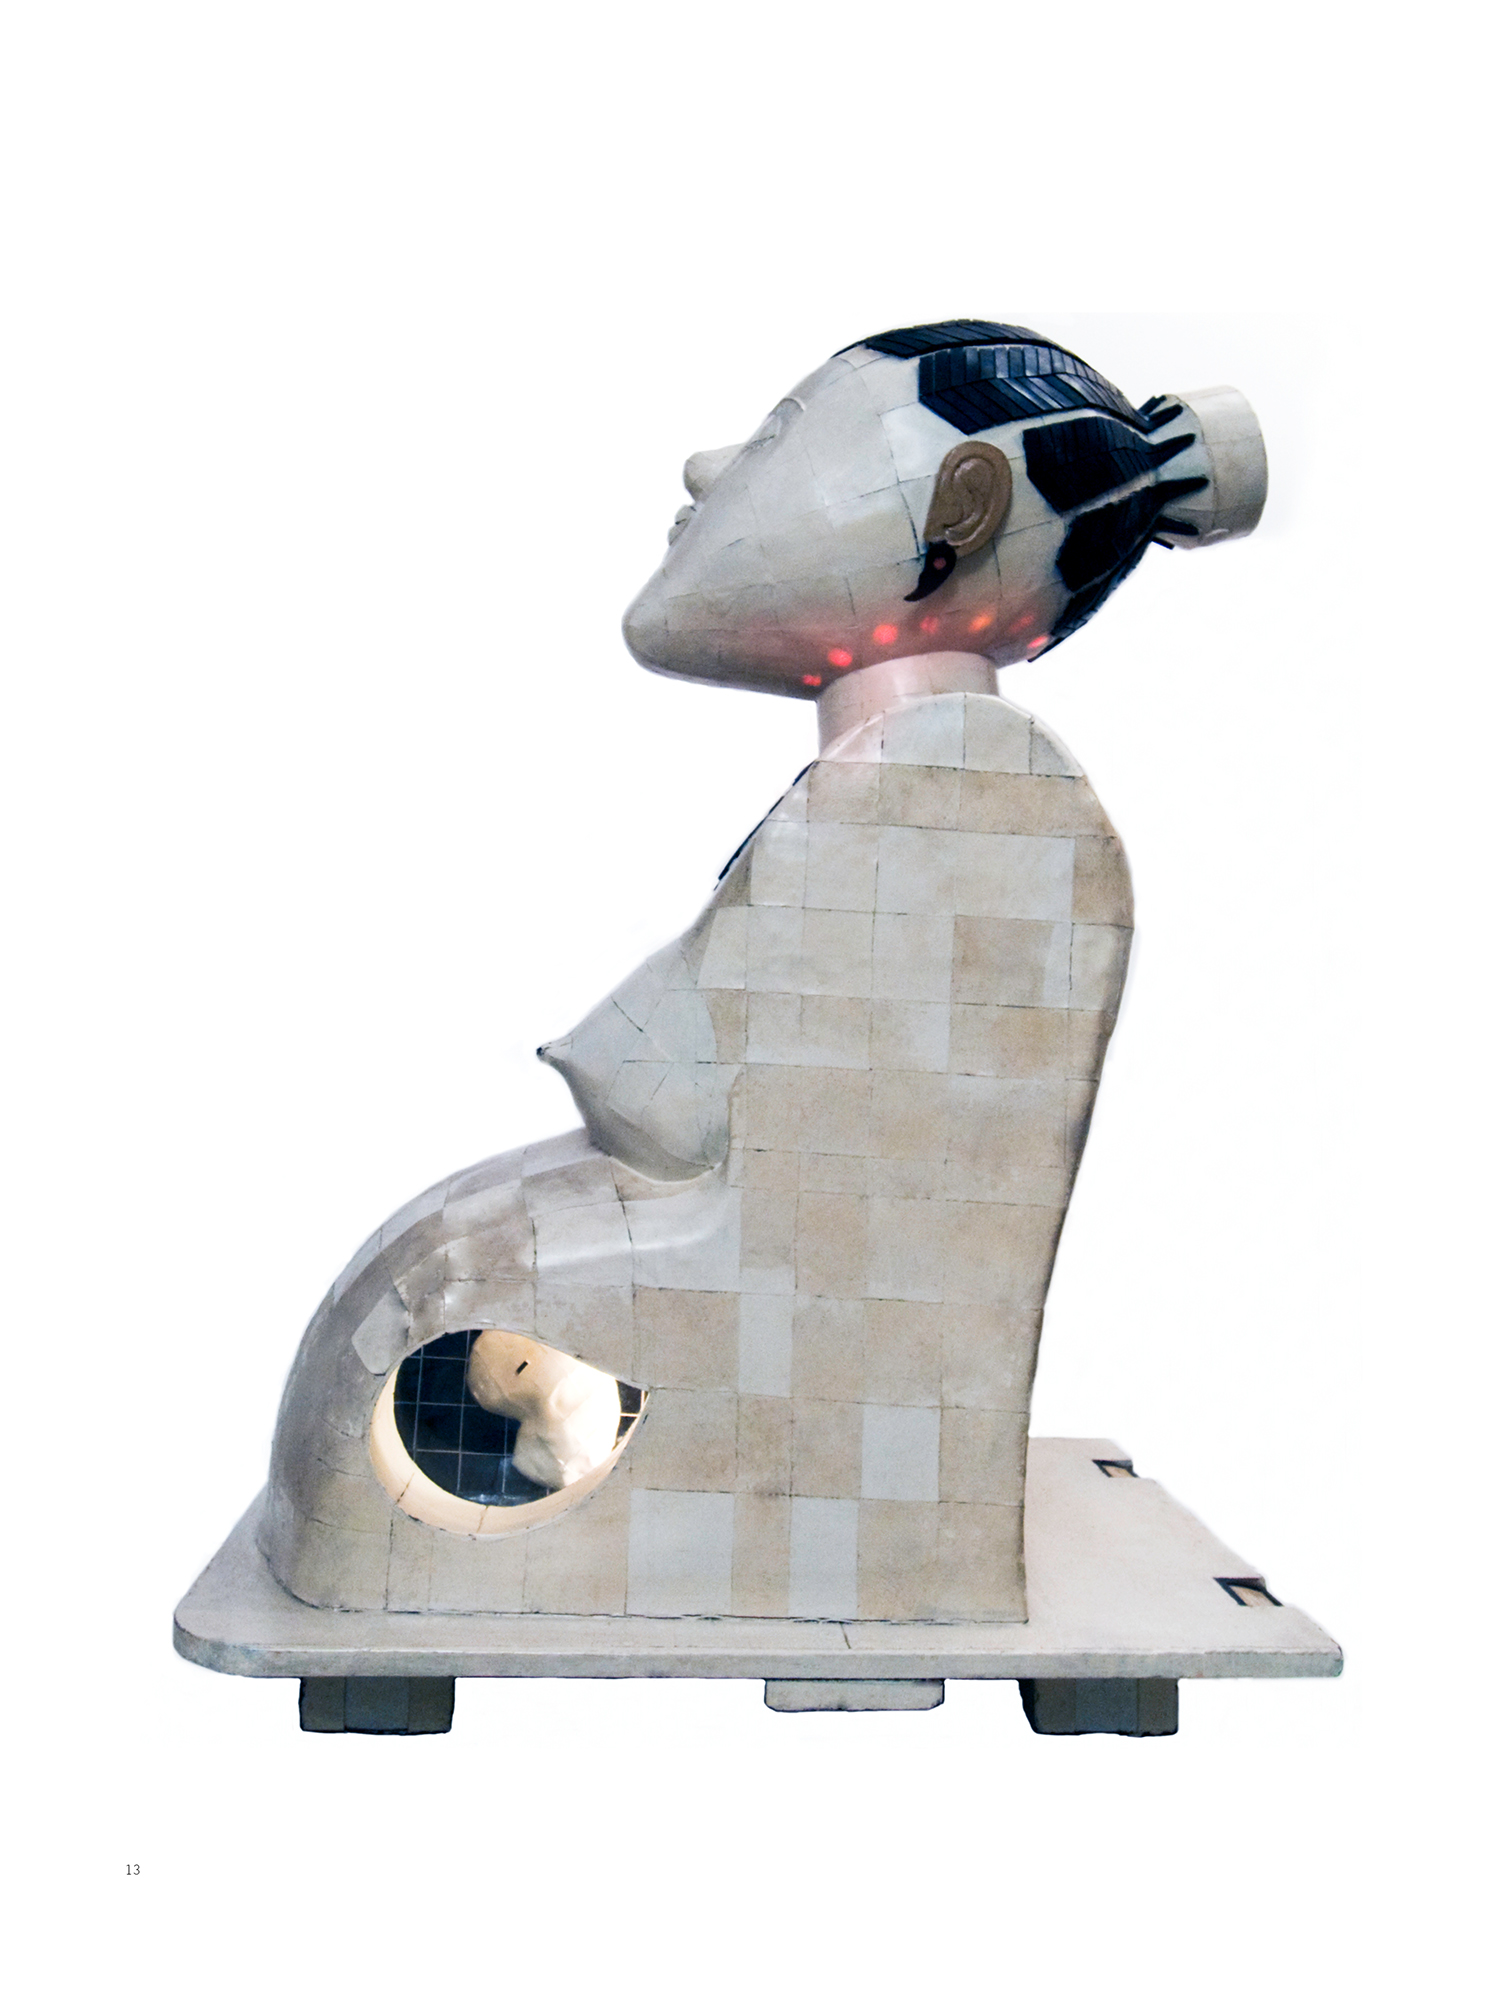 Pume Bylex, 'Maternity', sculpture mix media, 1992